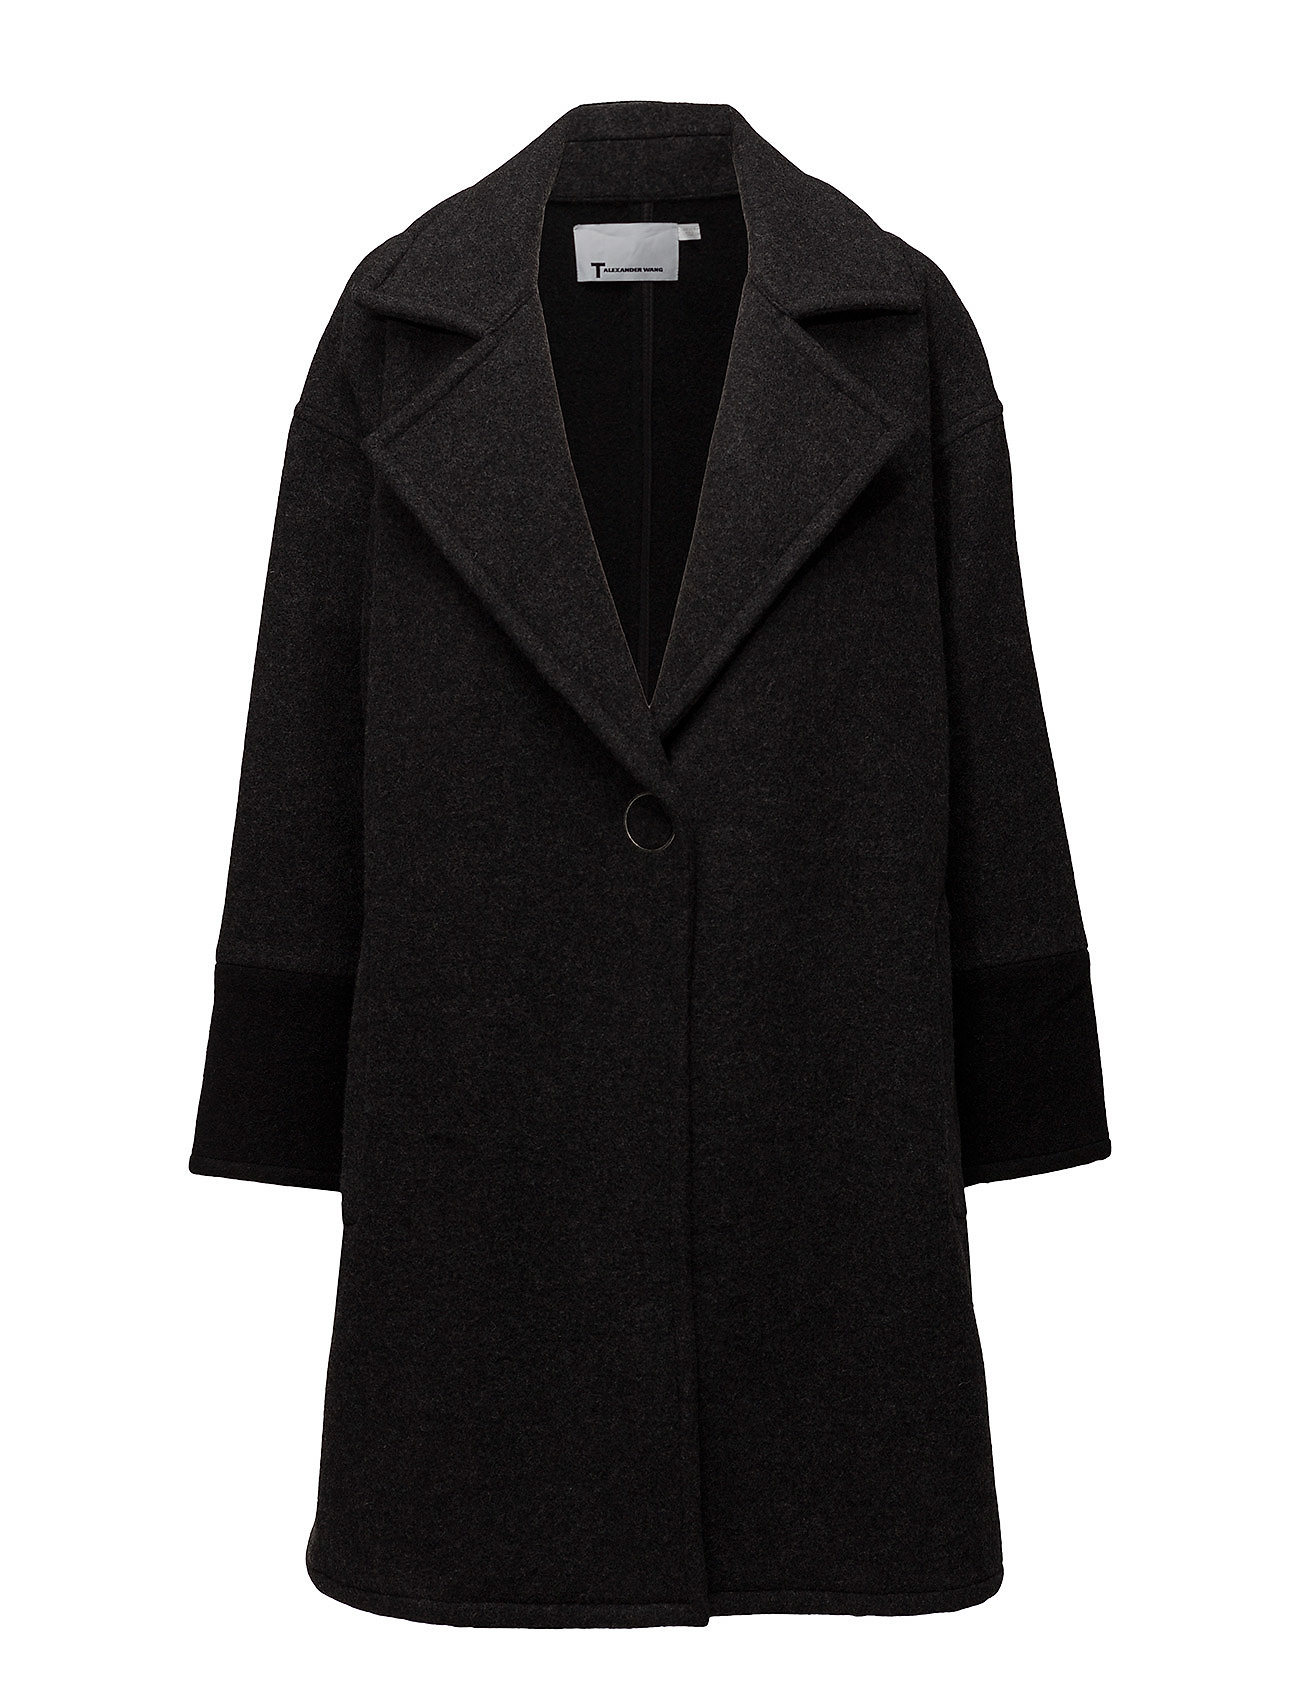 Plush coating coat with collar fra t by alexander wang fra boozt.com dk